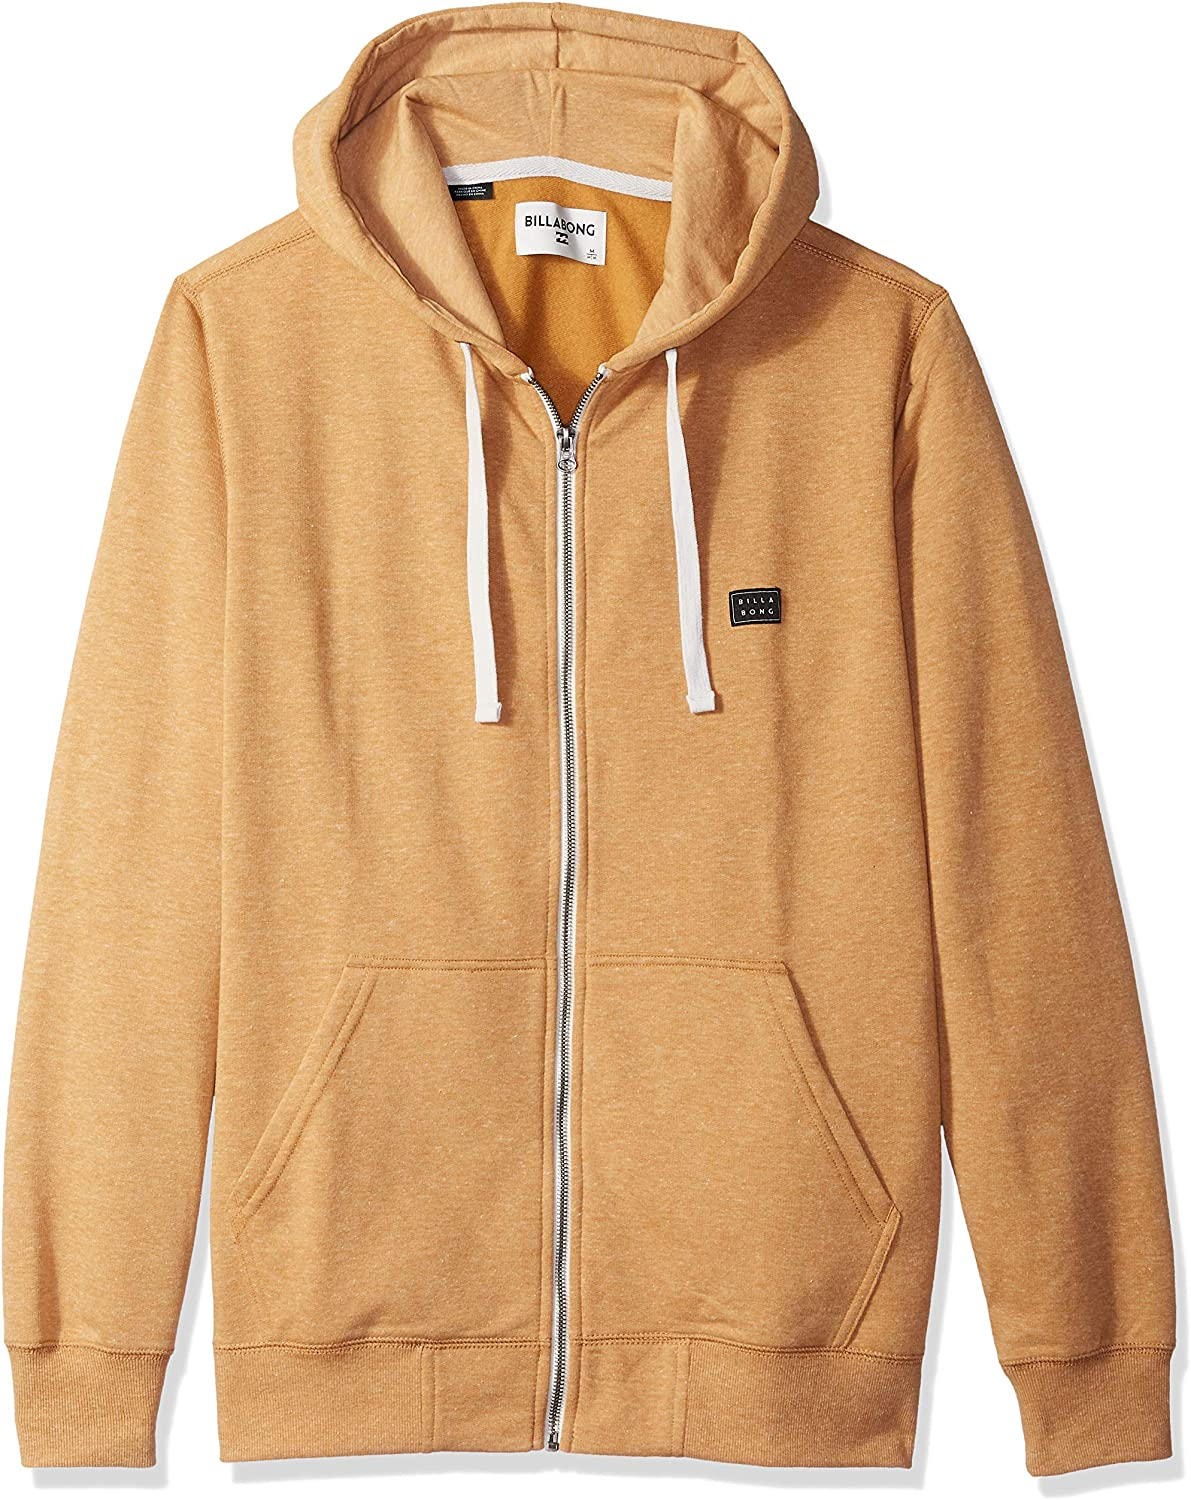 BILLABONG All Day Sweat-Shirt /à/ Capuche Homme